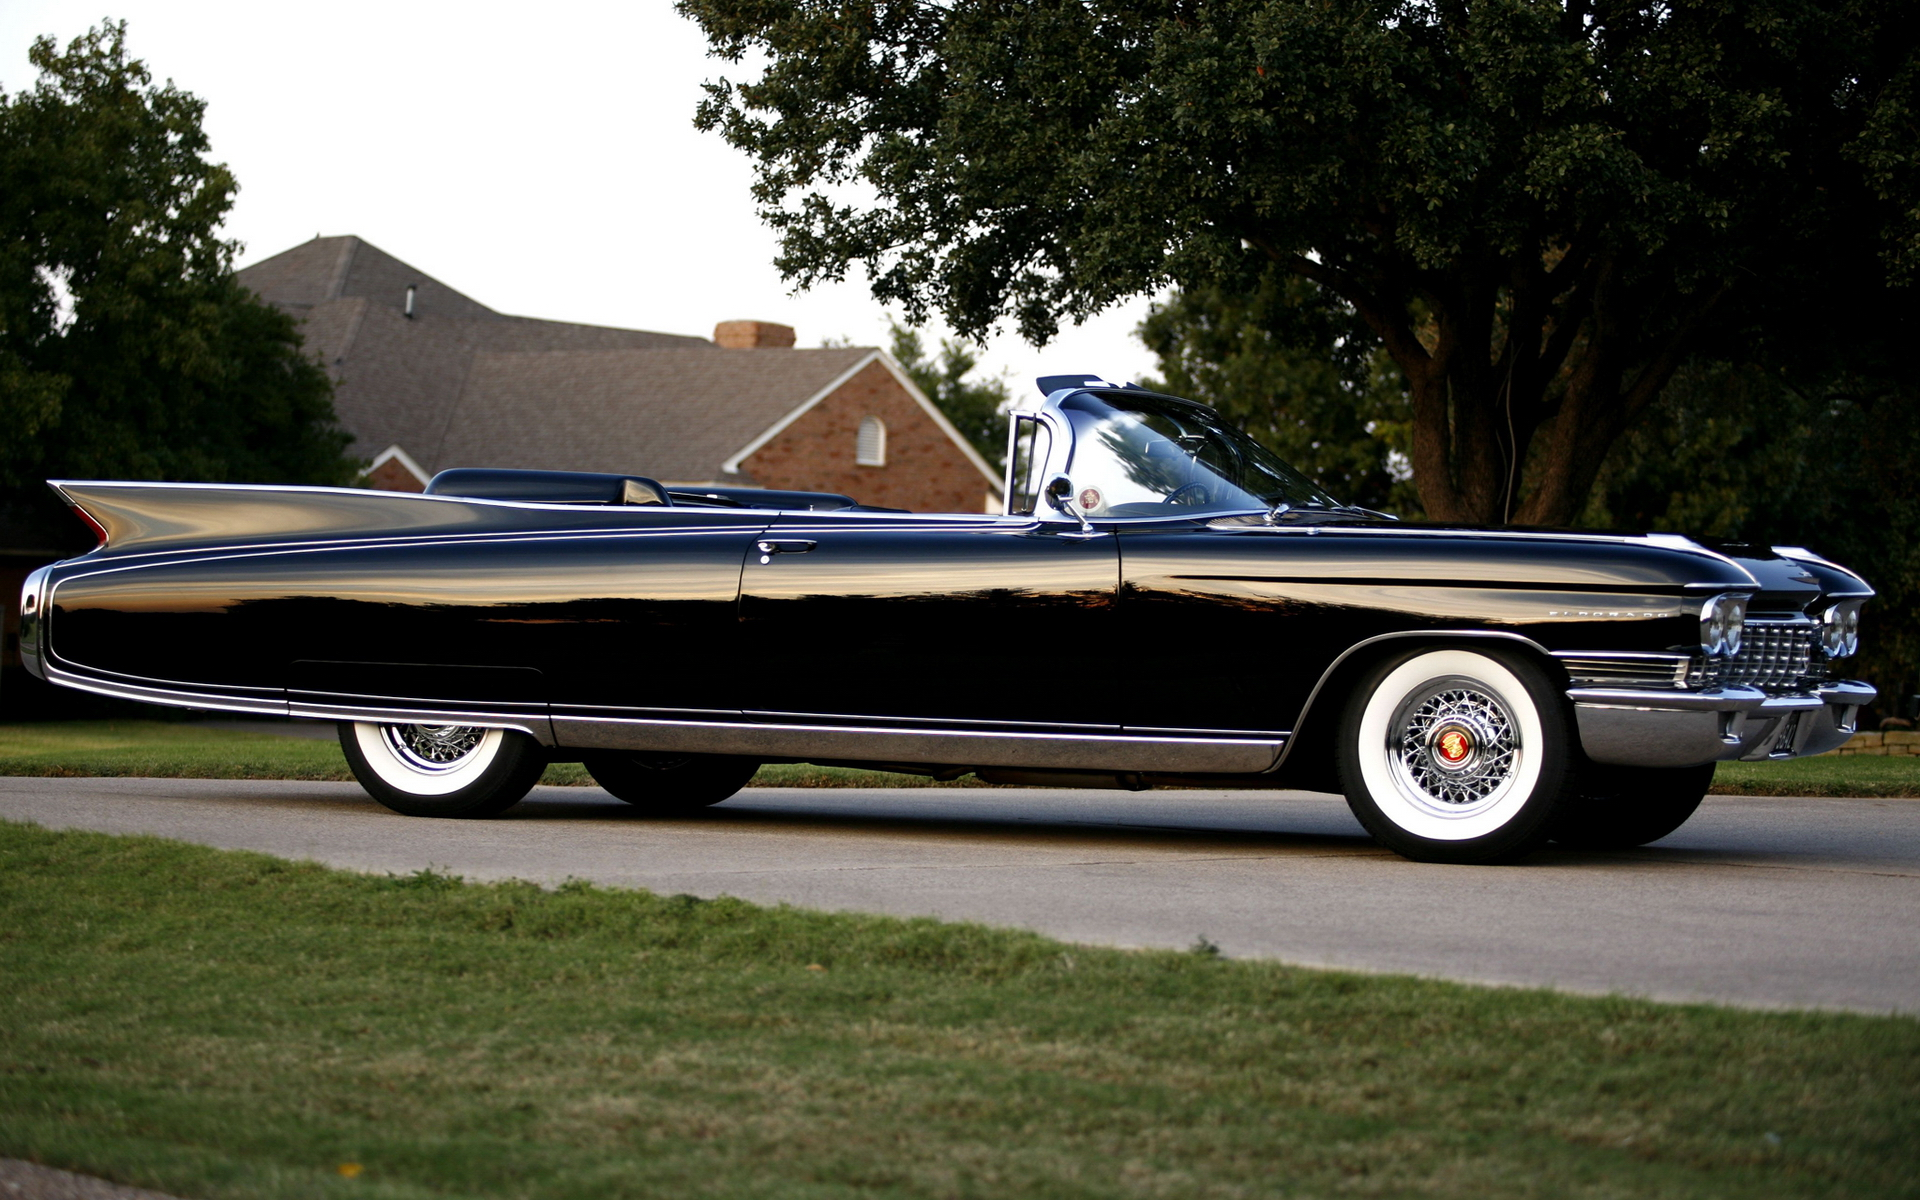 1960 Cadillac Eldorado Convertible Full HD Wallpaper and Background